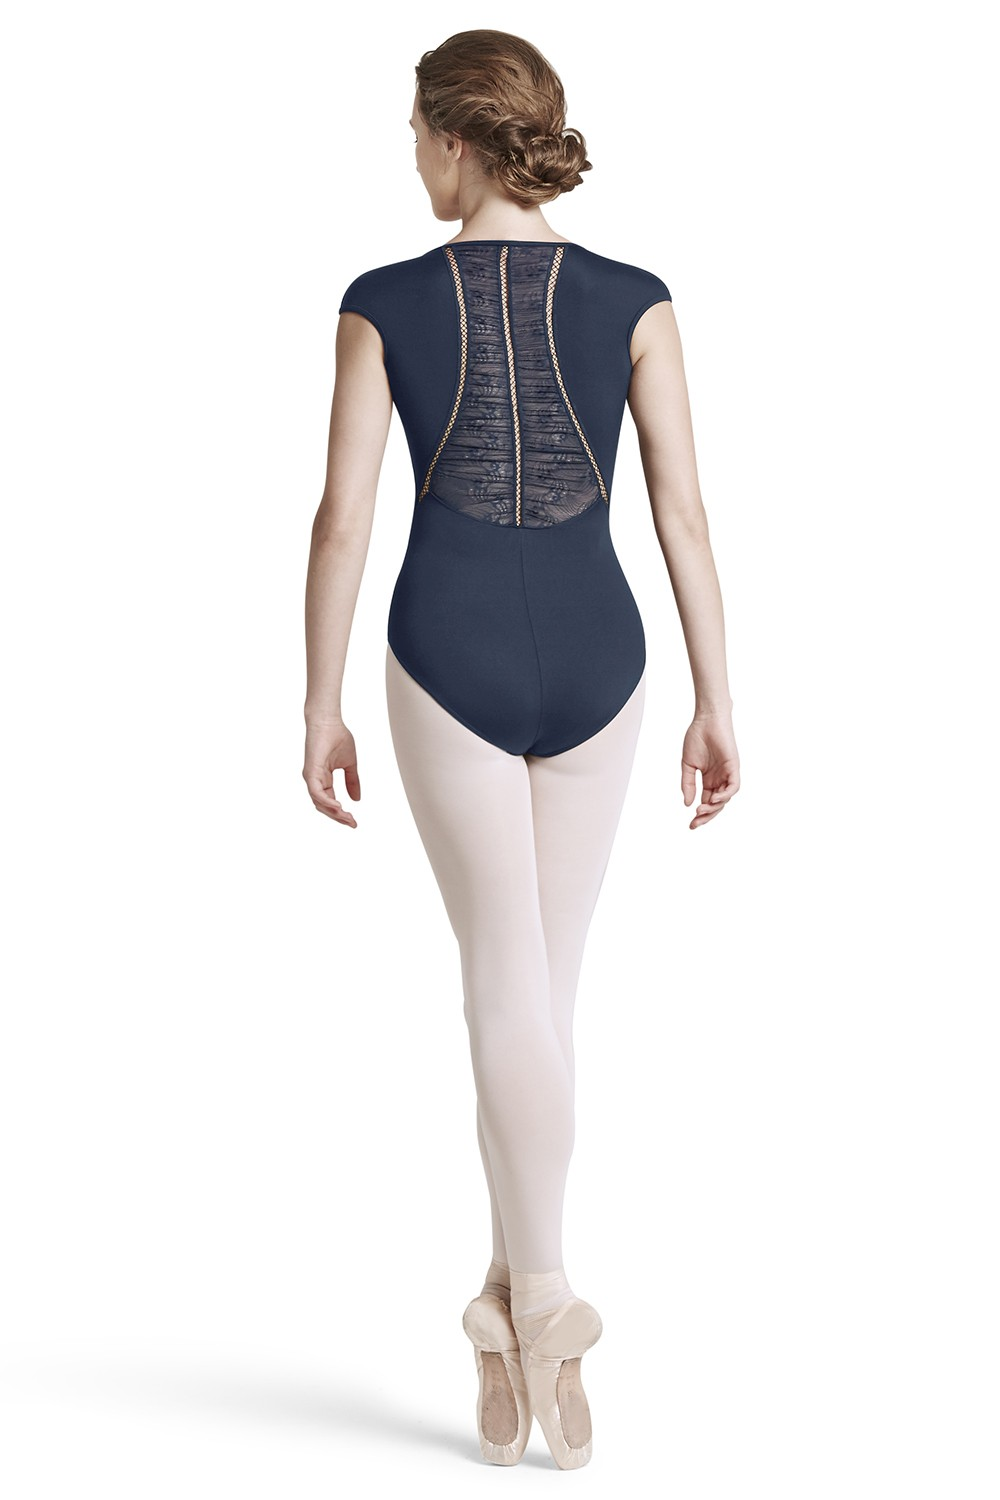 Gulab Women's Dance Leotards